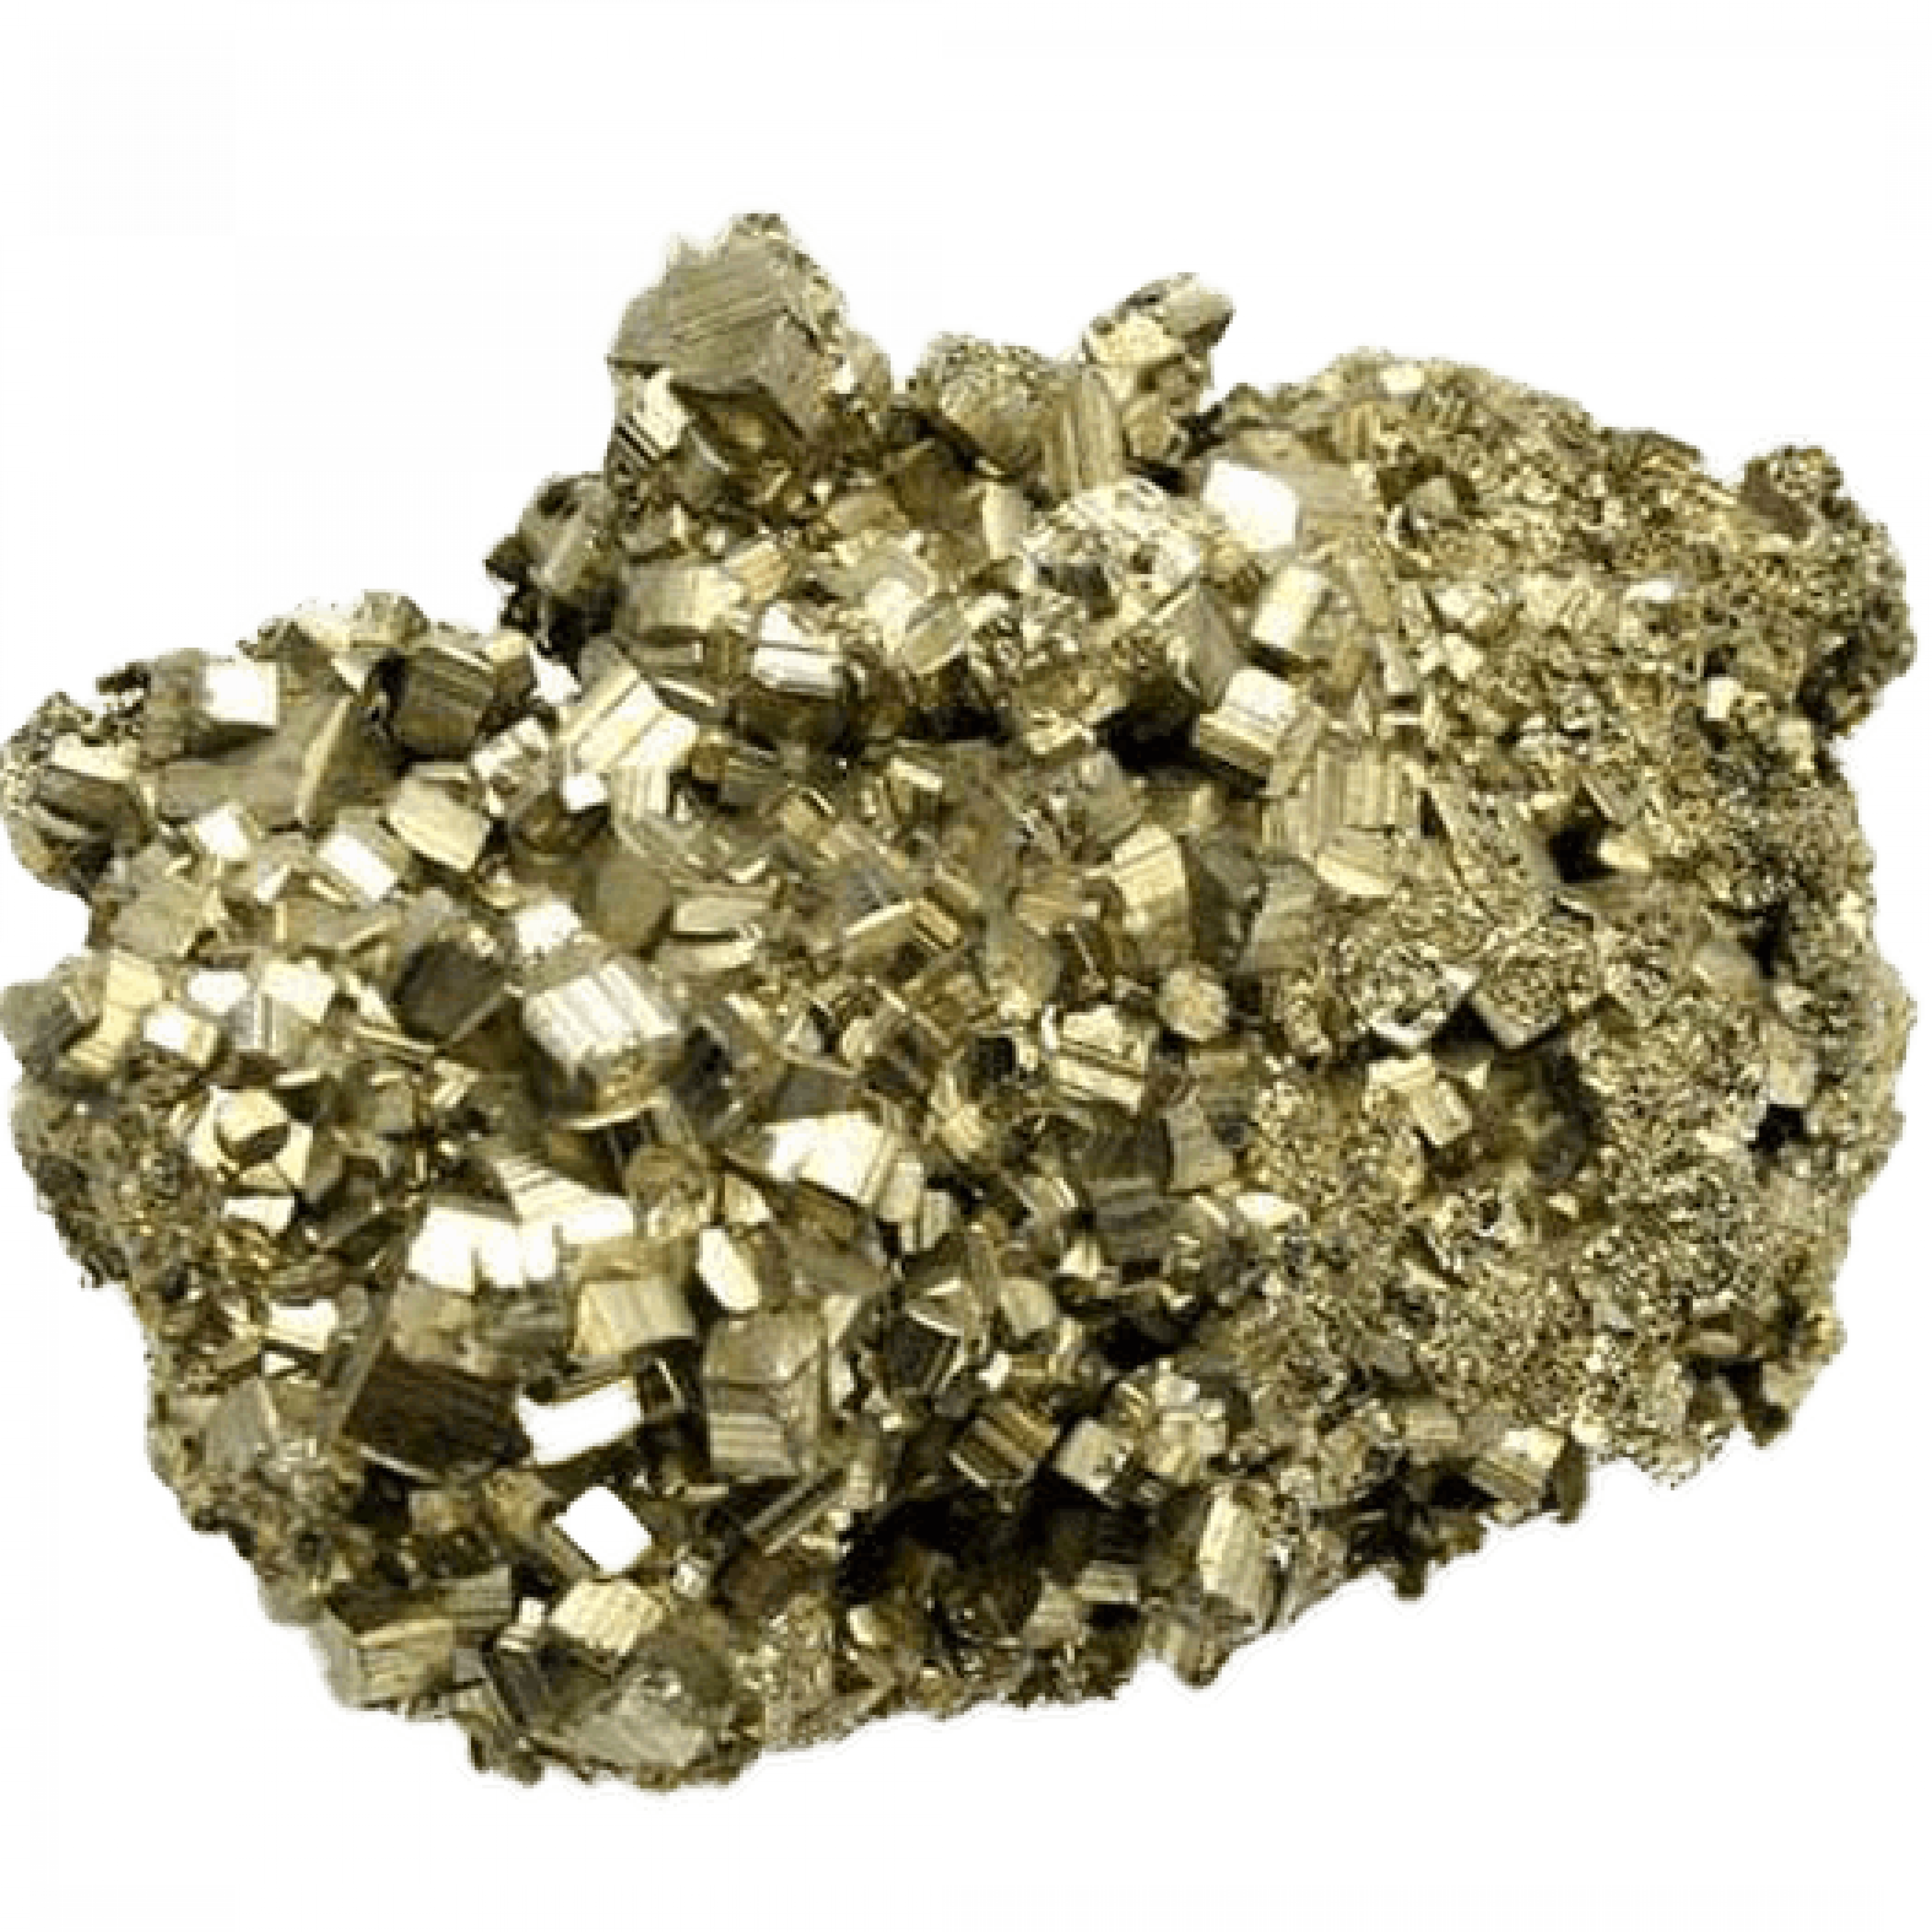 kisspng-crystal-healing-pyrite-gemstone-rock-pyrite-5bad1c32256421.3826604815380716021532 (1)